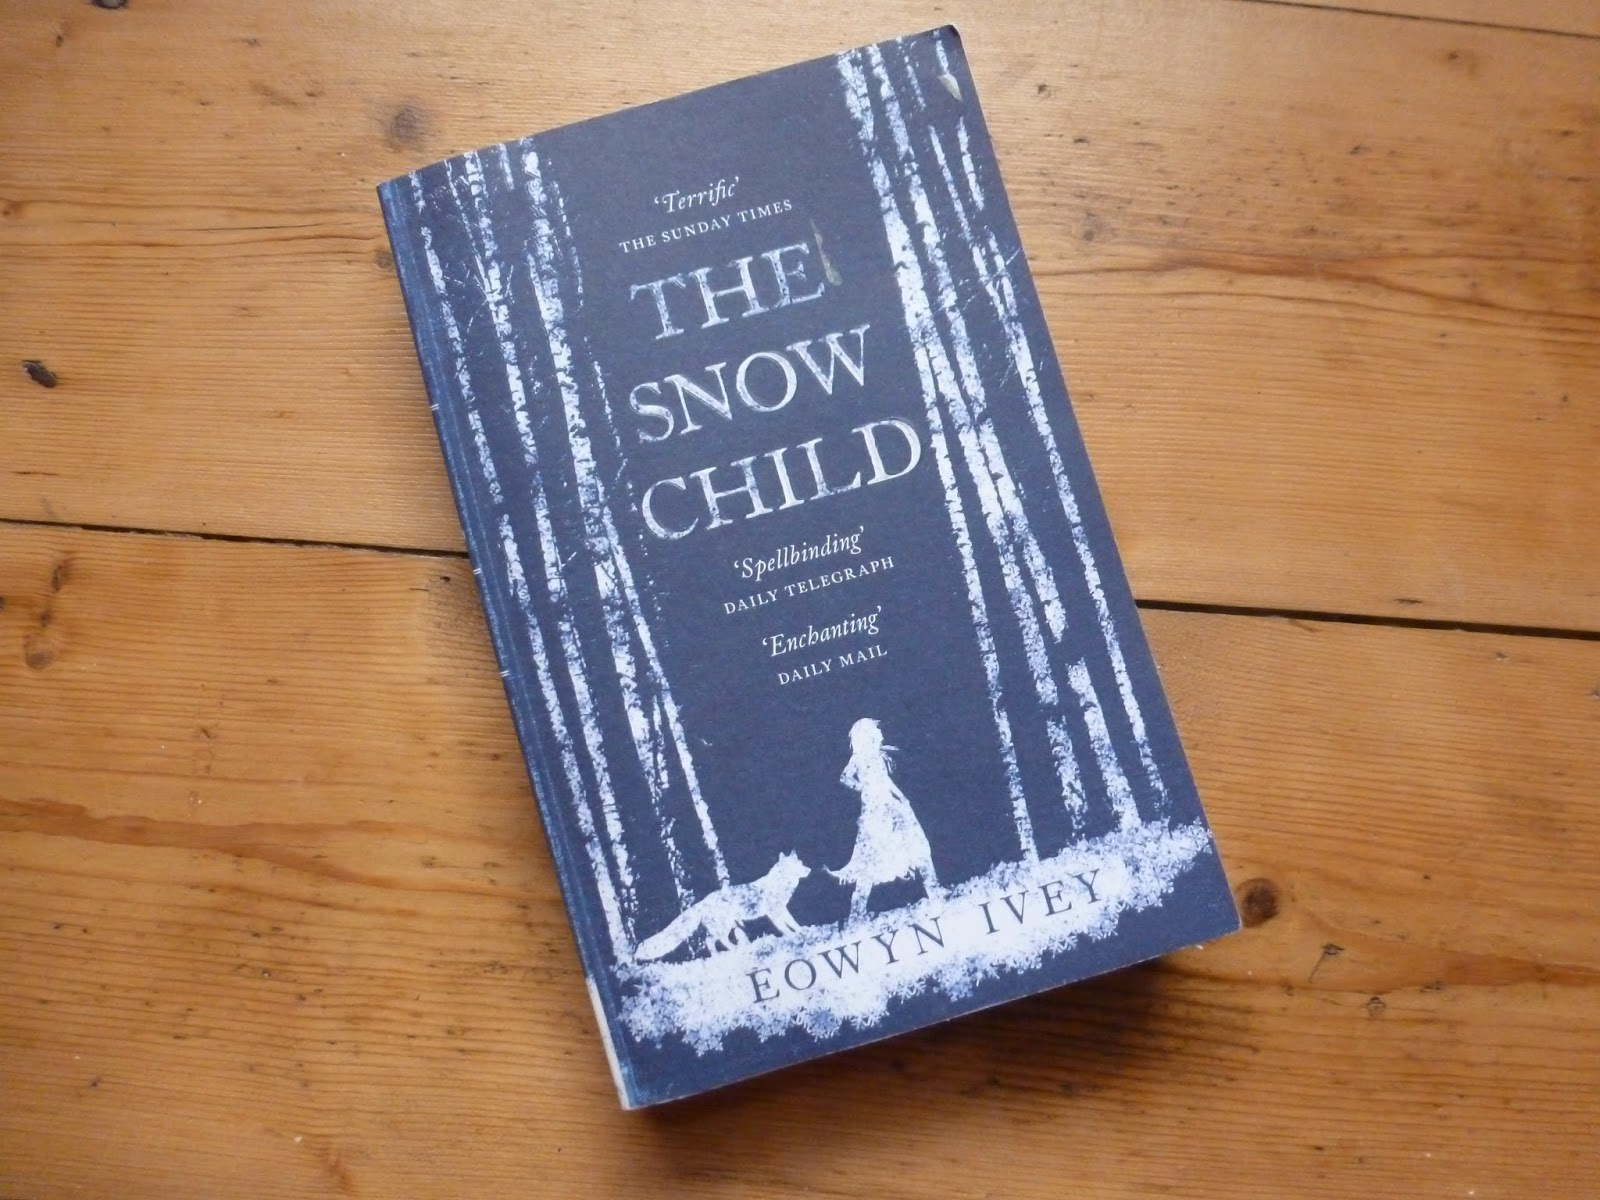 the snow child book by eowyn ivey